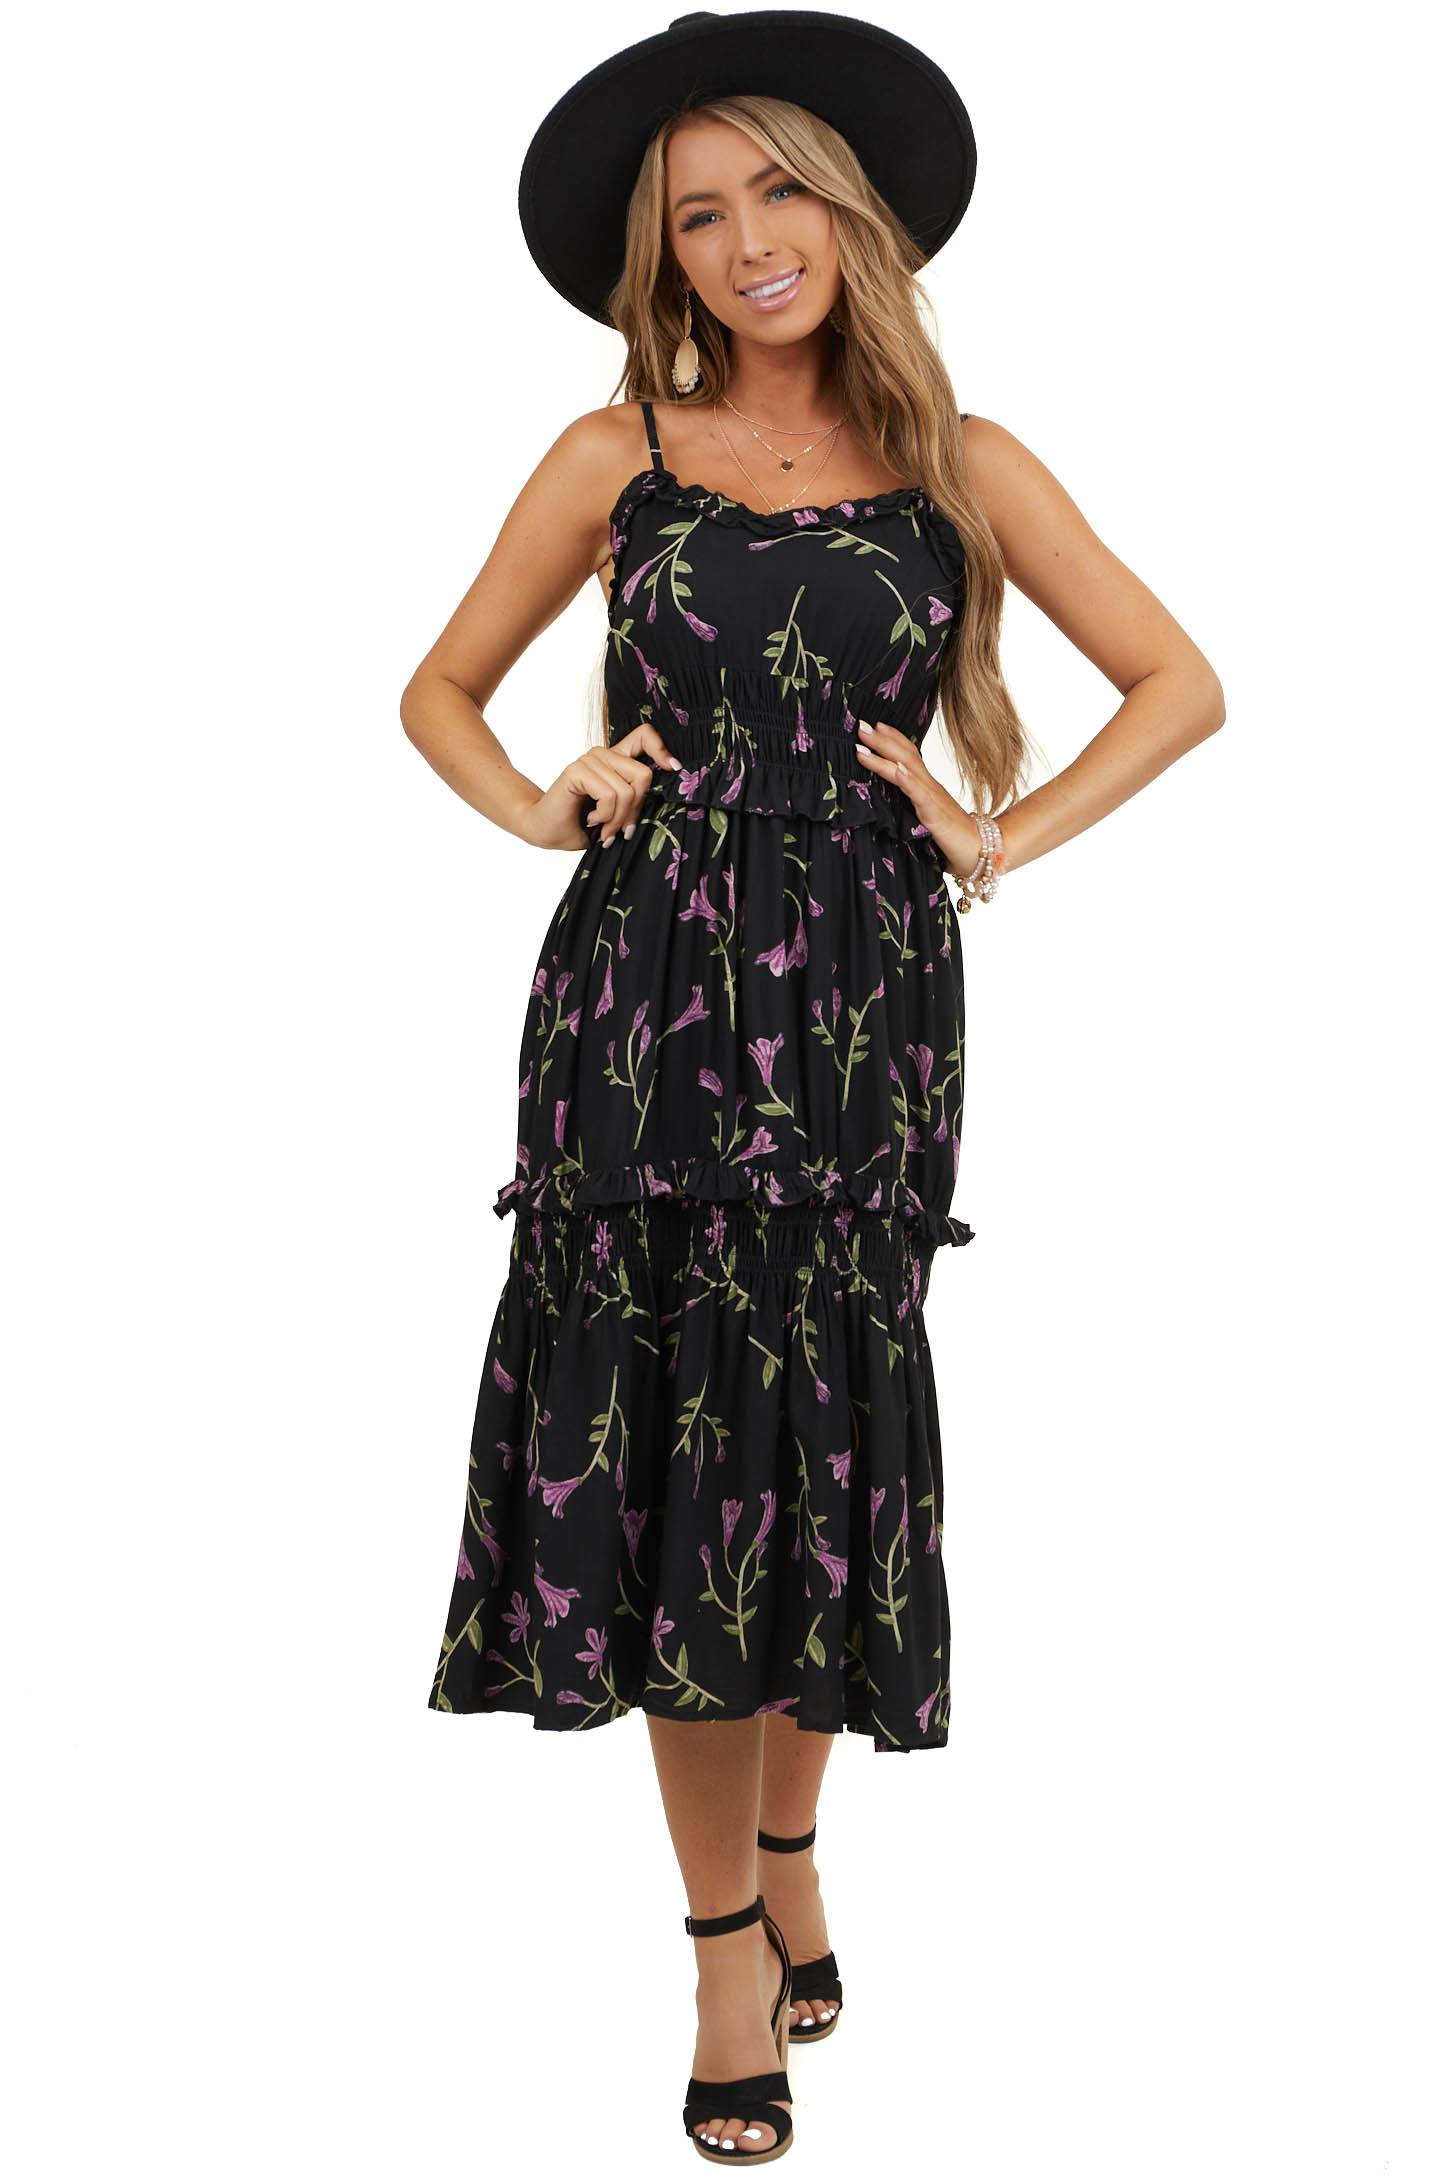 Black Floral Print Sleeveless Midi Dress with Smocked Detail